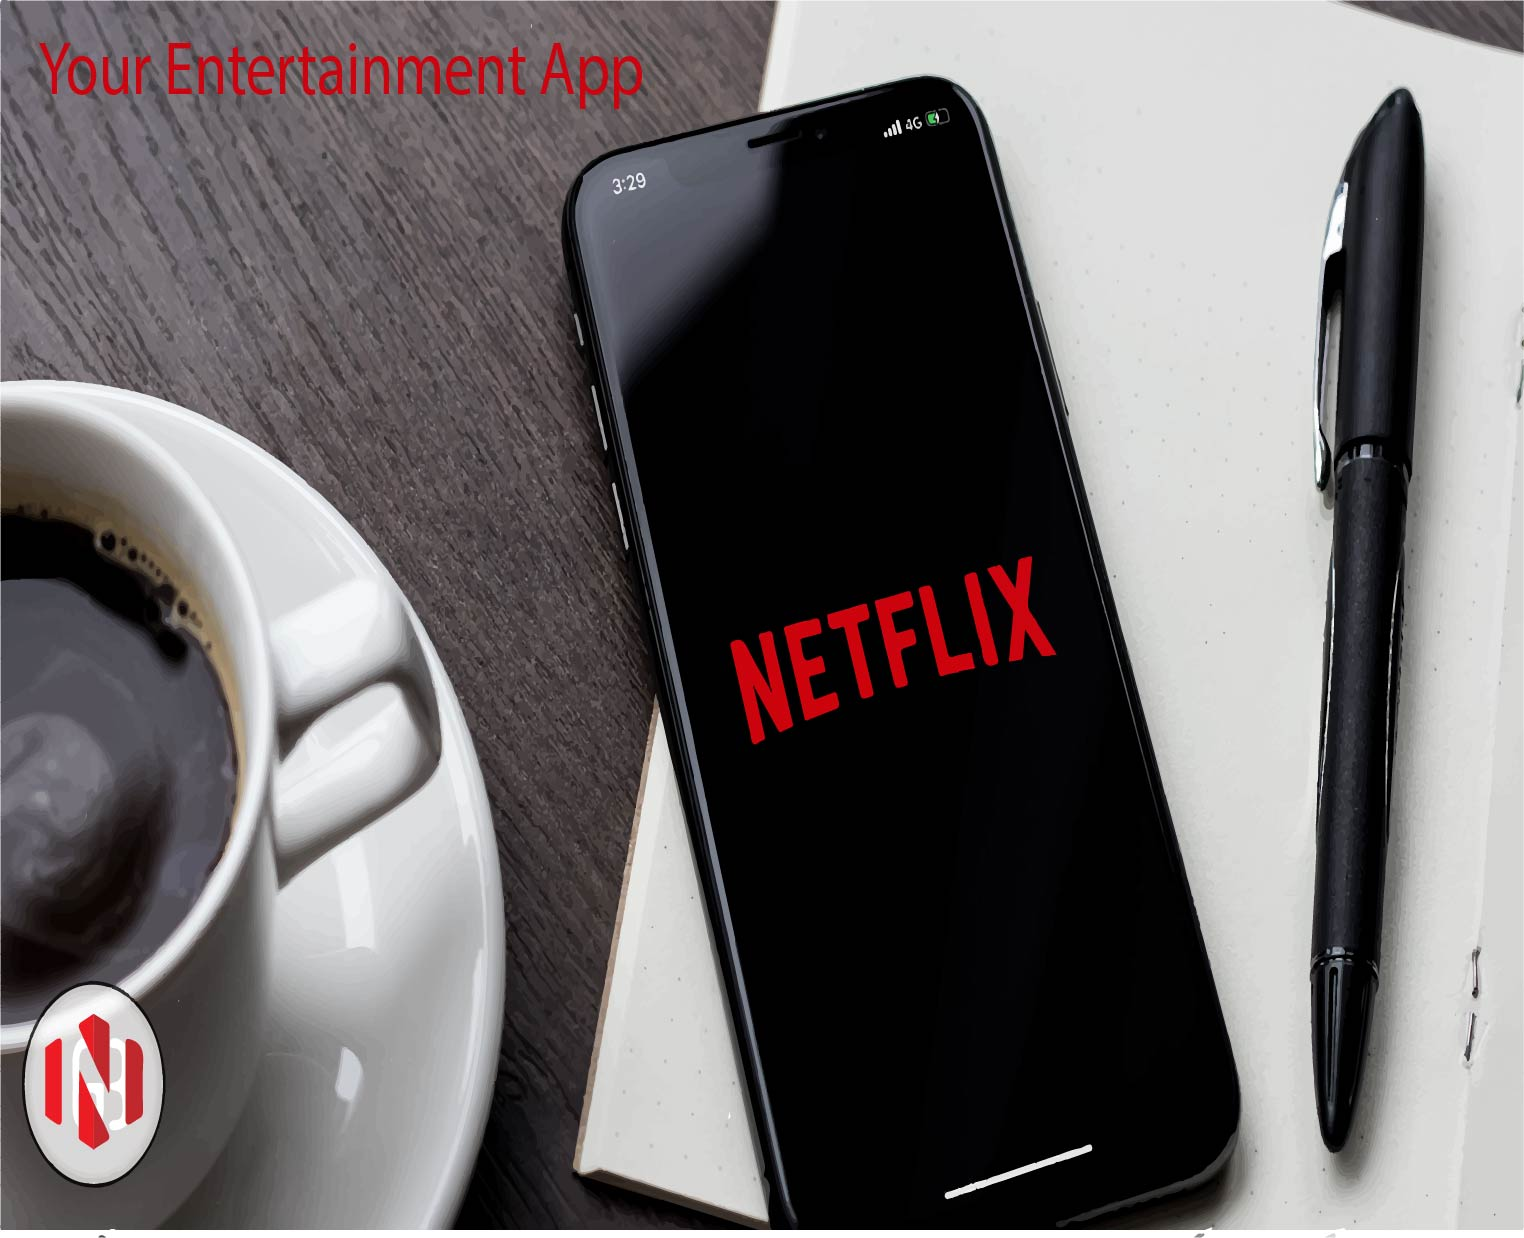 Netflix Mod Apk For Iphone